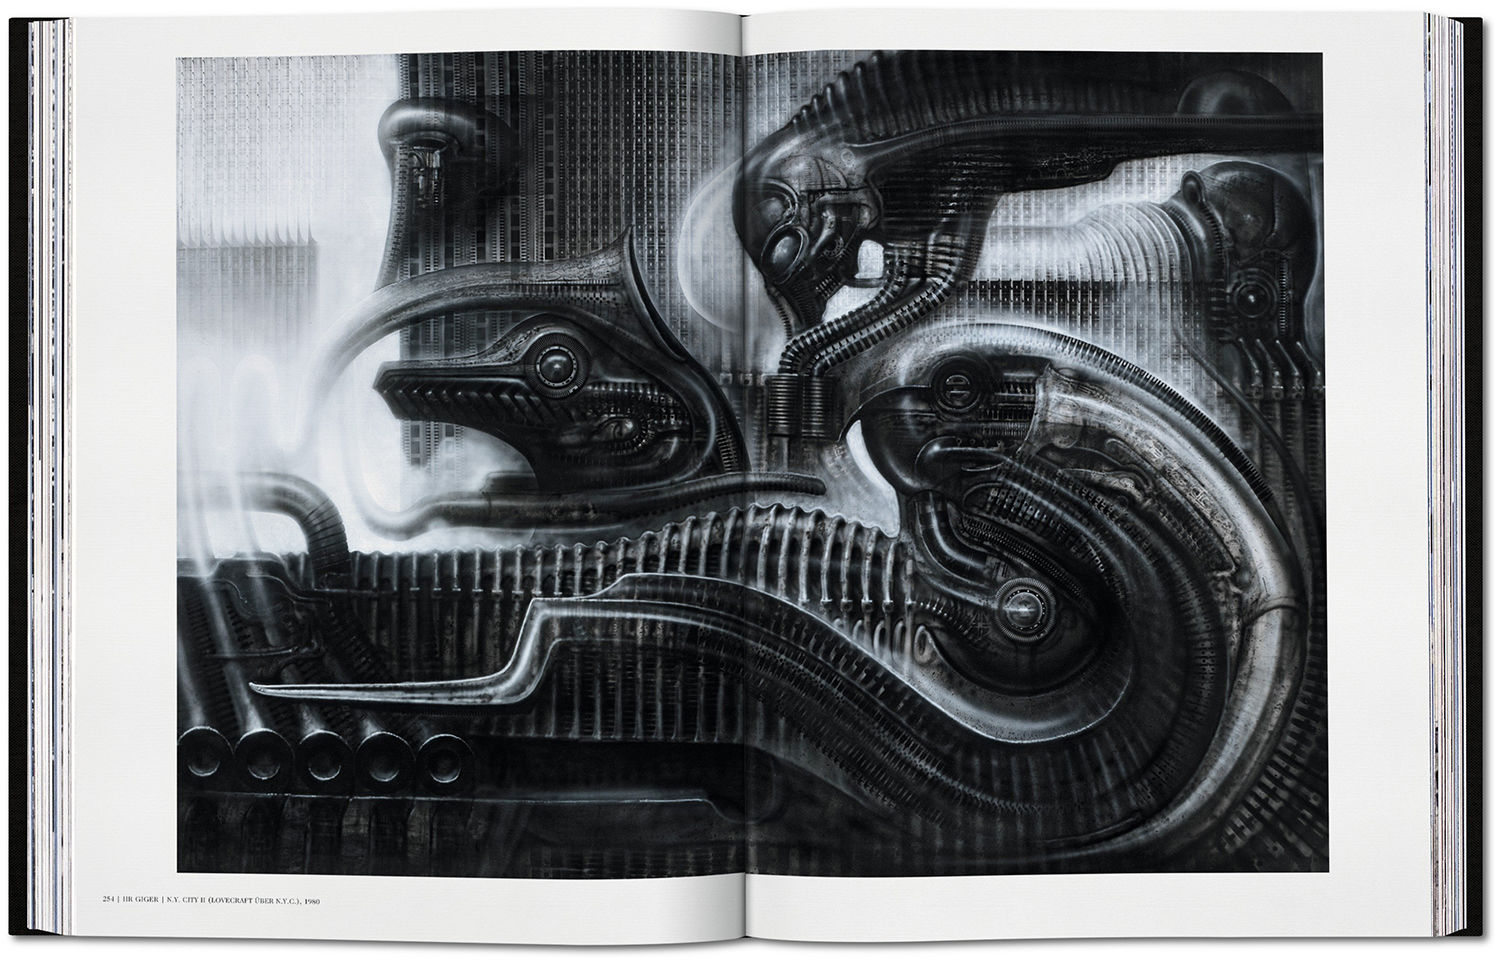 hr giger s biomechanical surrealism re ed in epic monograph for any hr giger fans an extra pound650 a copy of only 1000 sumo sized monograph s paying homage to the infamously dark work of the swiss artist could be